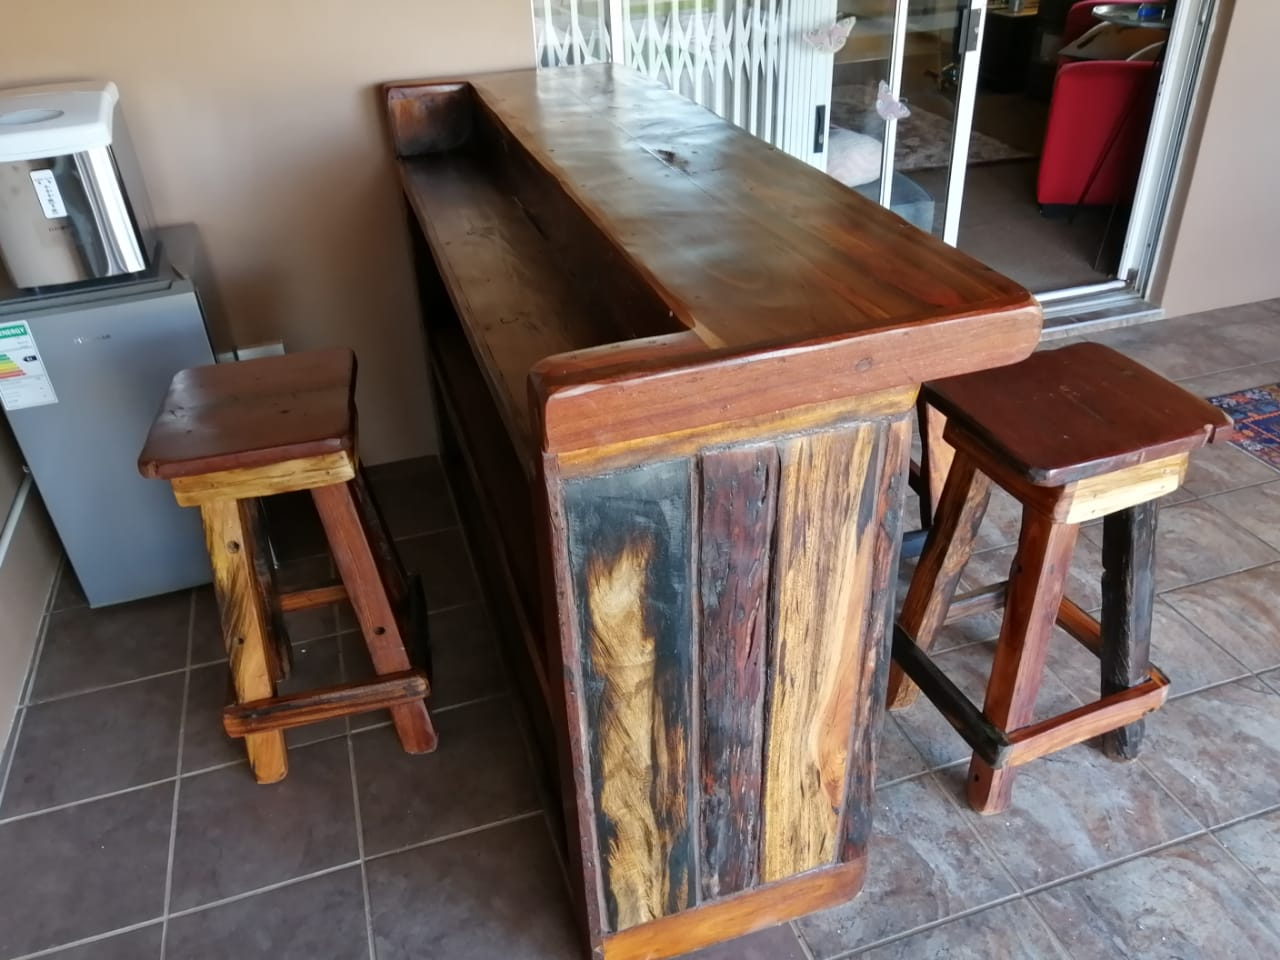 2m reguit bar, 4stoele - 2m straight bar and 4 chairs 4500